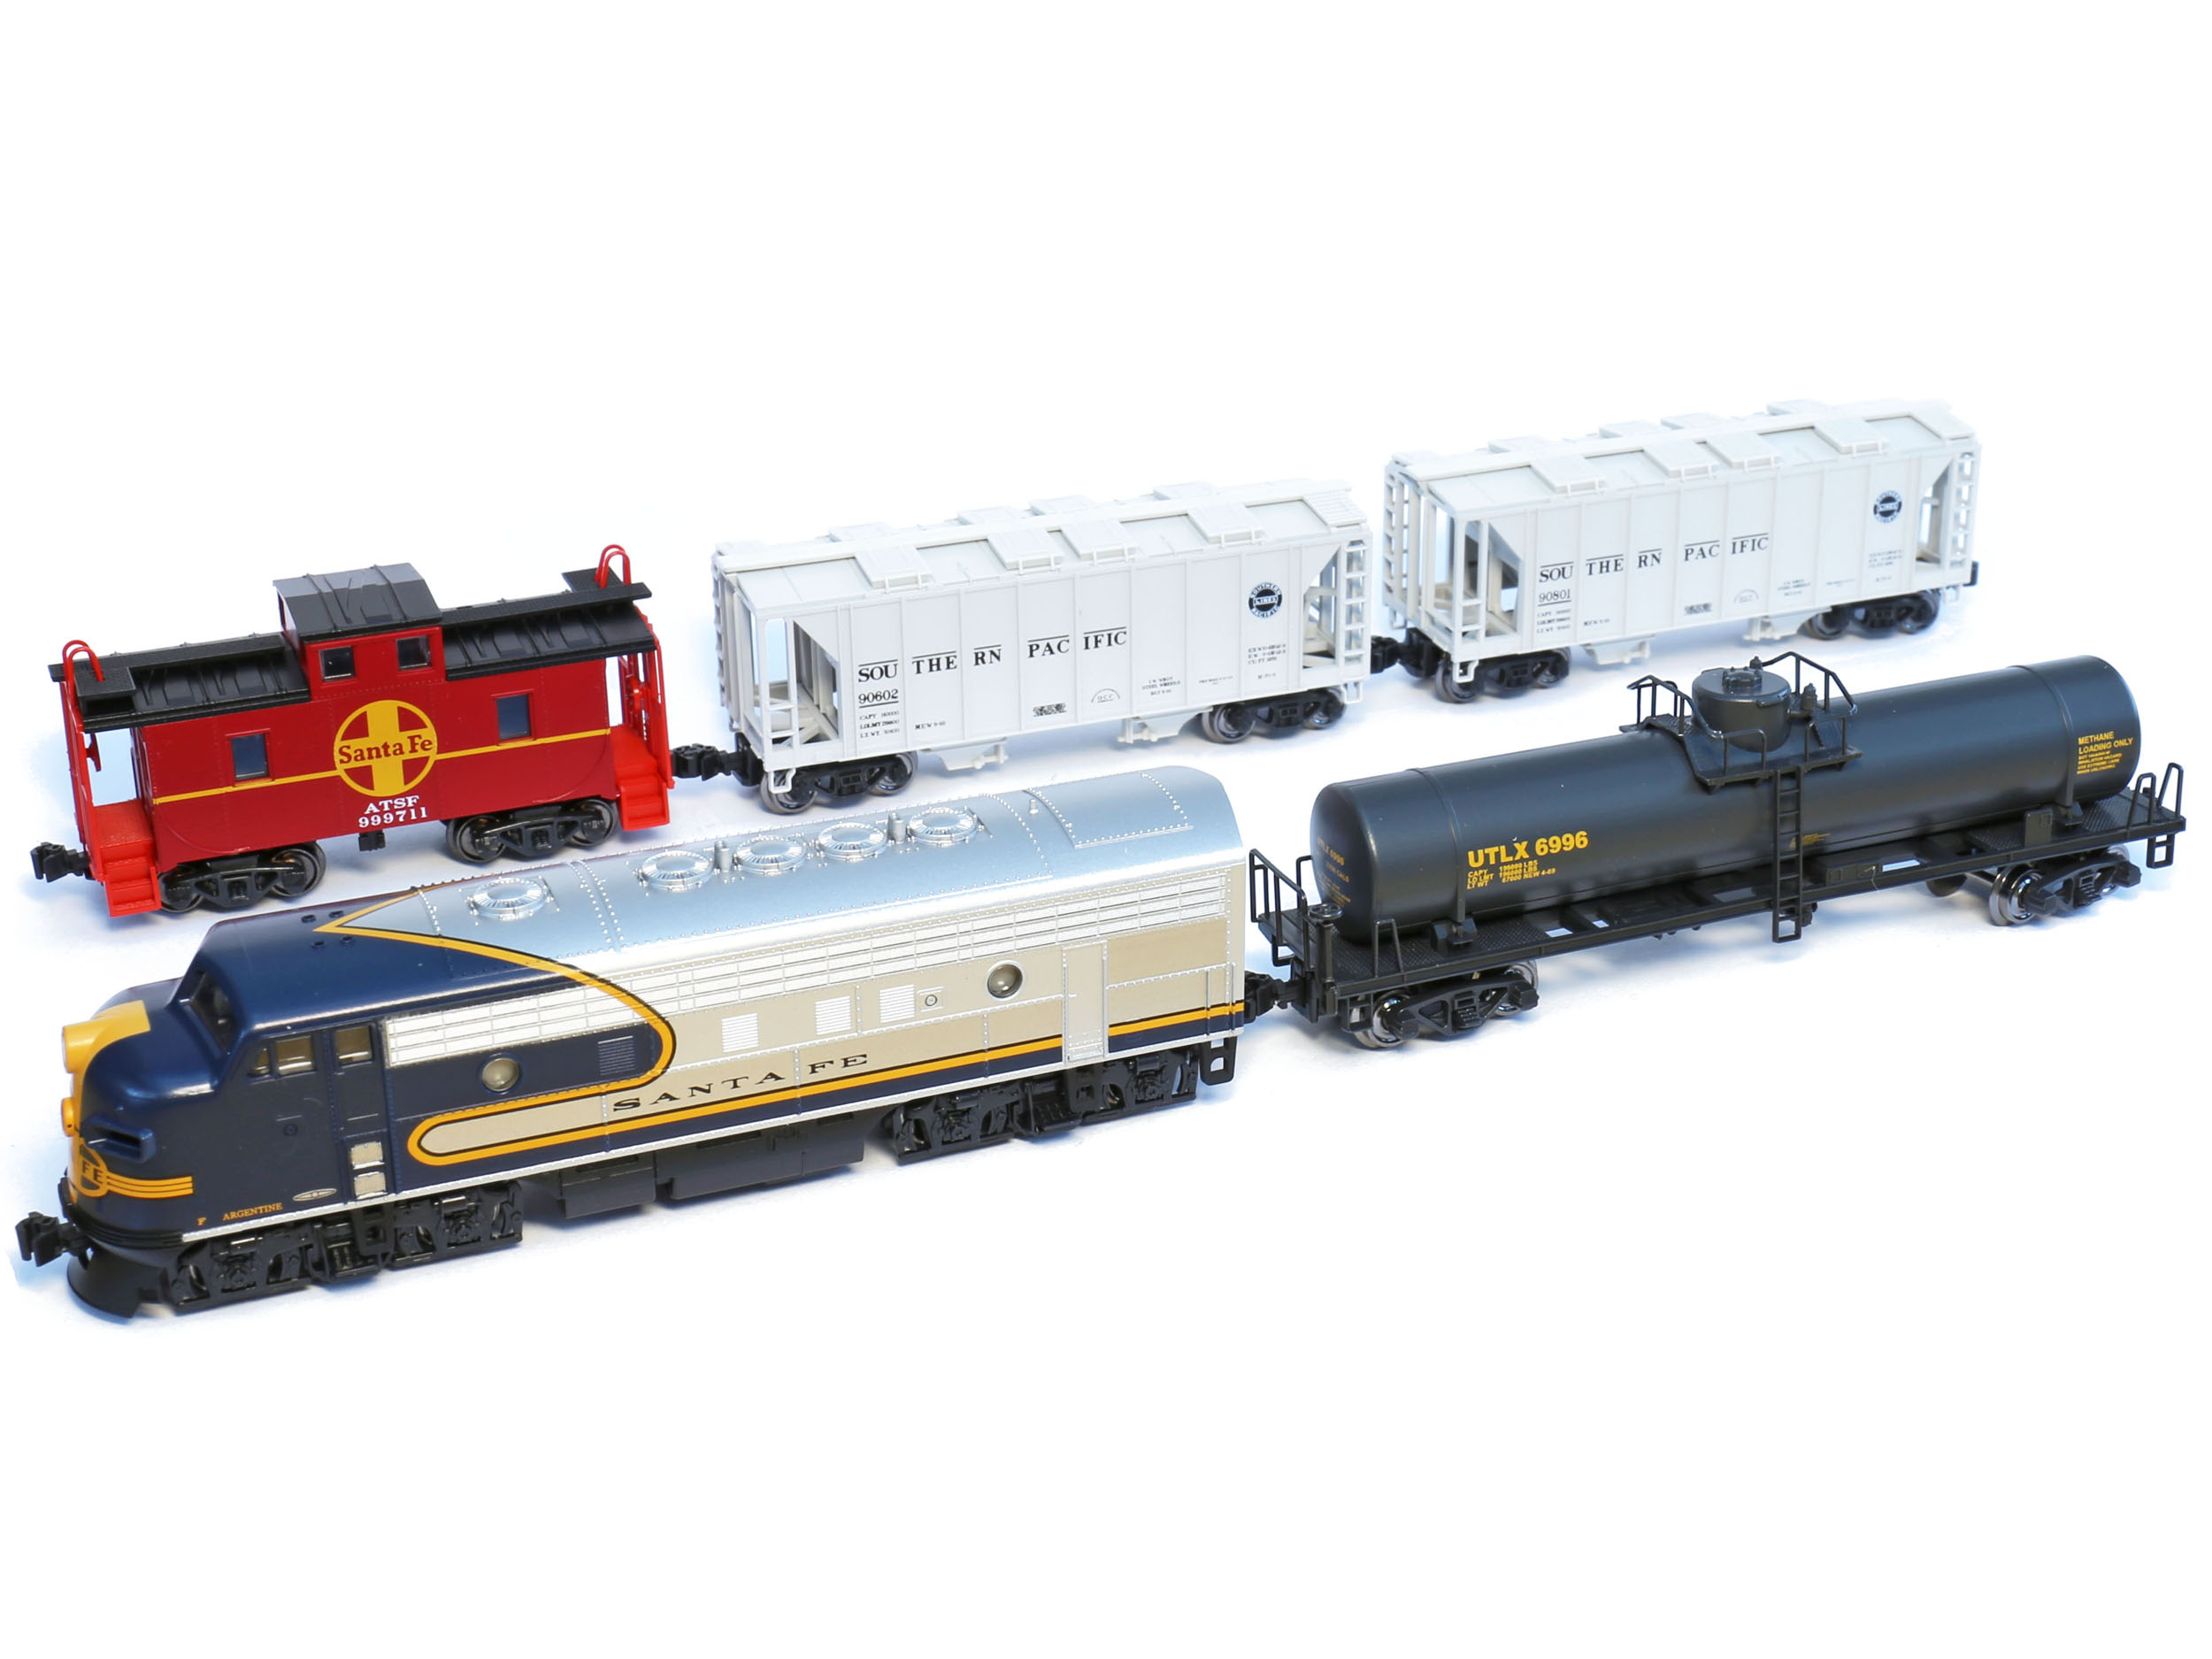 Kato N 1066273 Santa Fe F7 Blue Bonnet Freight Set Without Track Free Shipping Sumo Ci